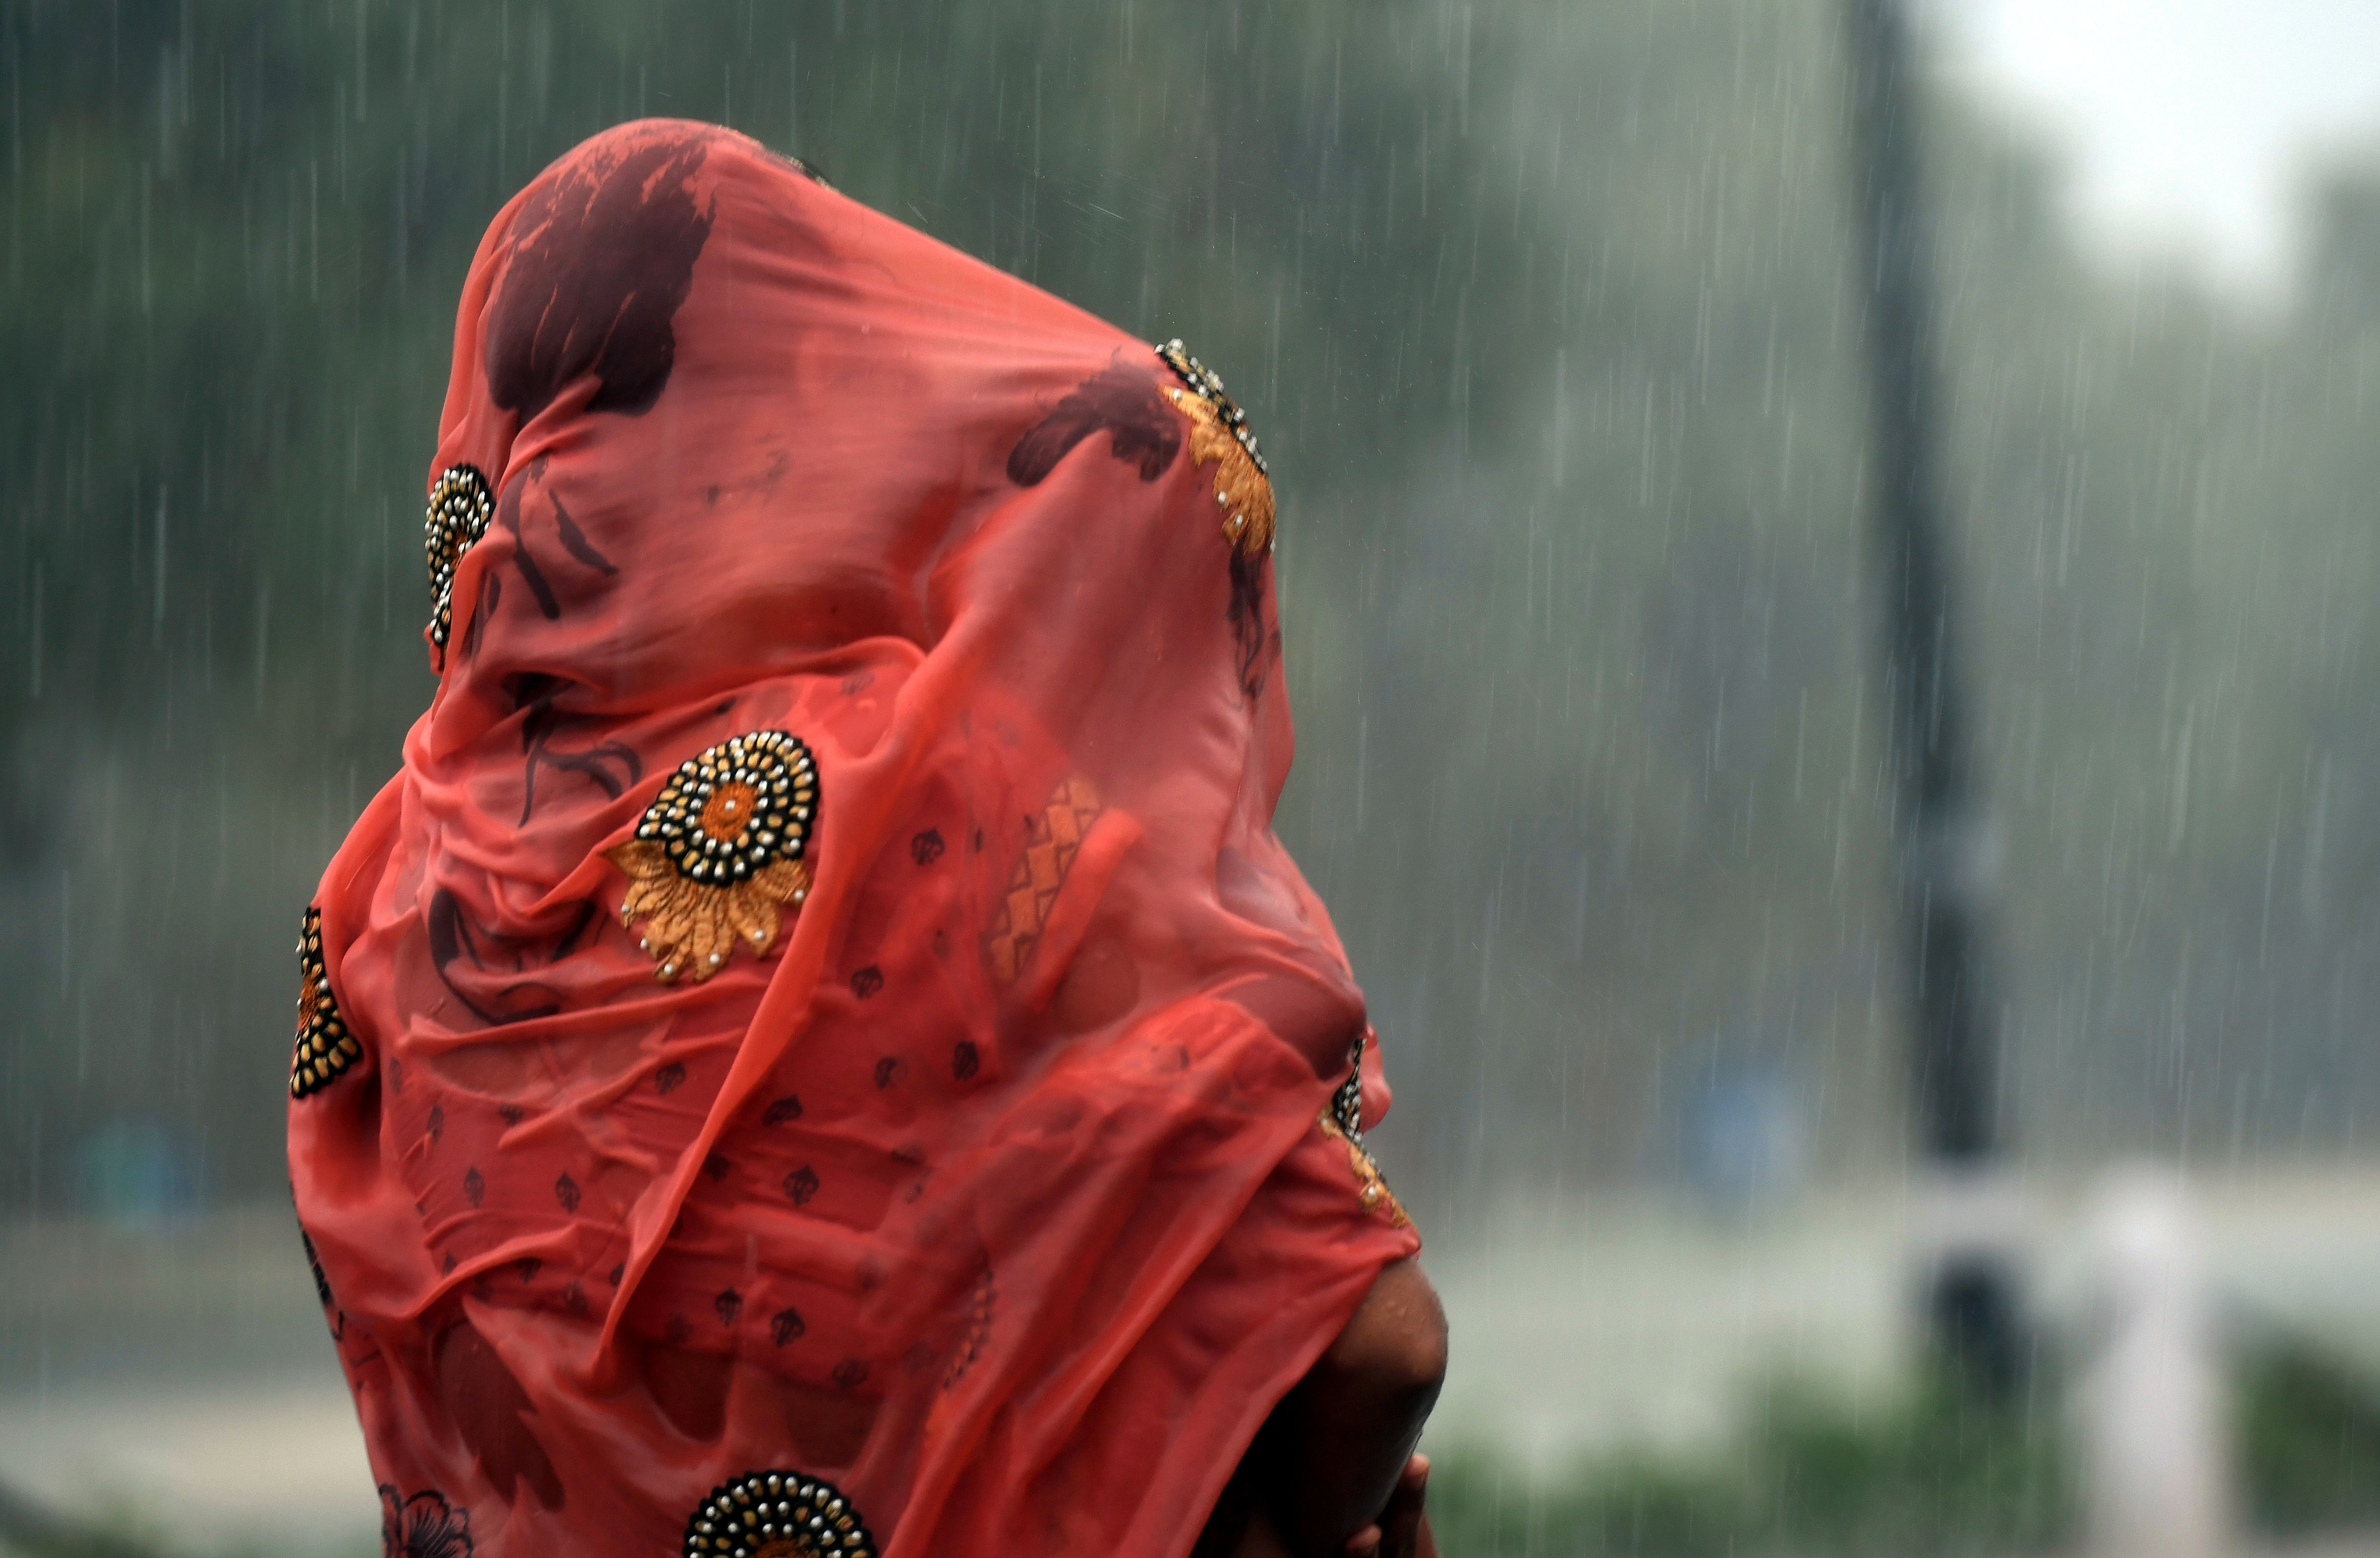 An Indian woman covers her baby under her saree during heavy rain at Rajpath in New Delhi on August 7, 2017. (Photo: PRAKASH SINGH/AFP/Getty Images)